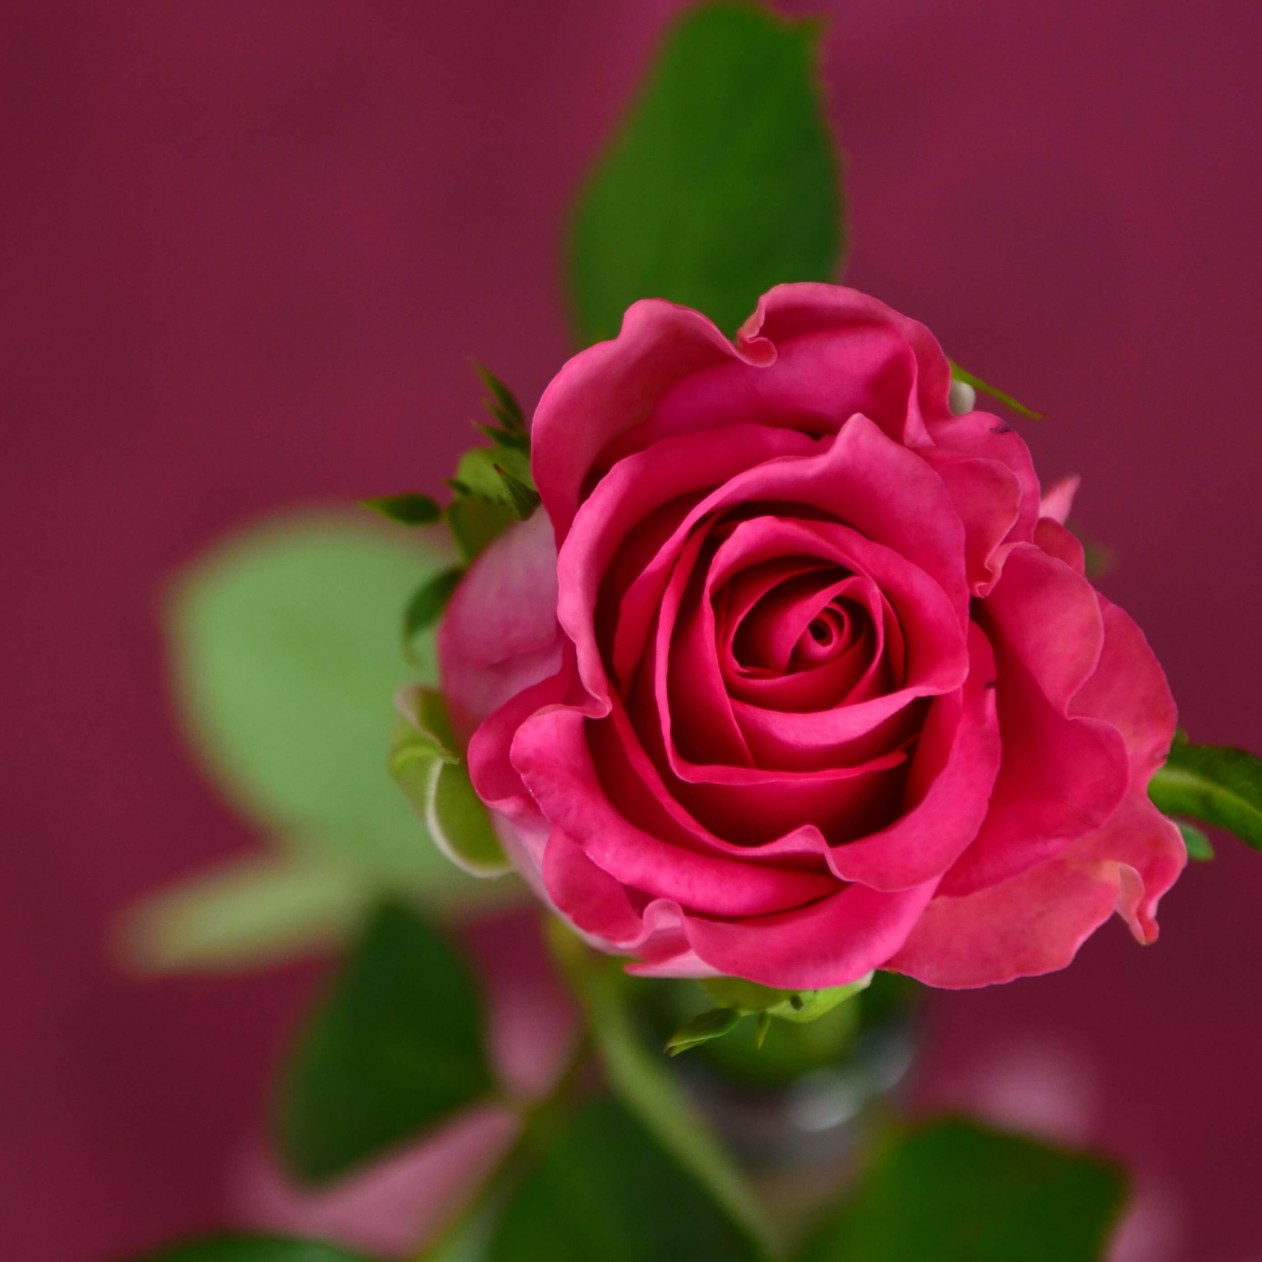 Single Pink Rose Wallpaper for Apple iPad mini